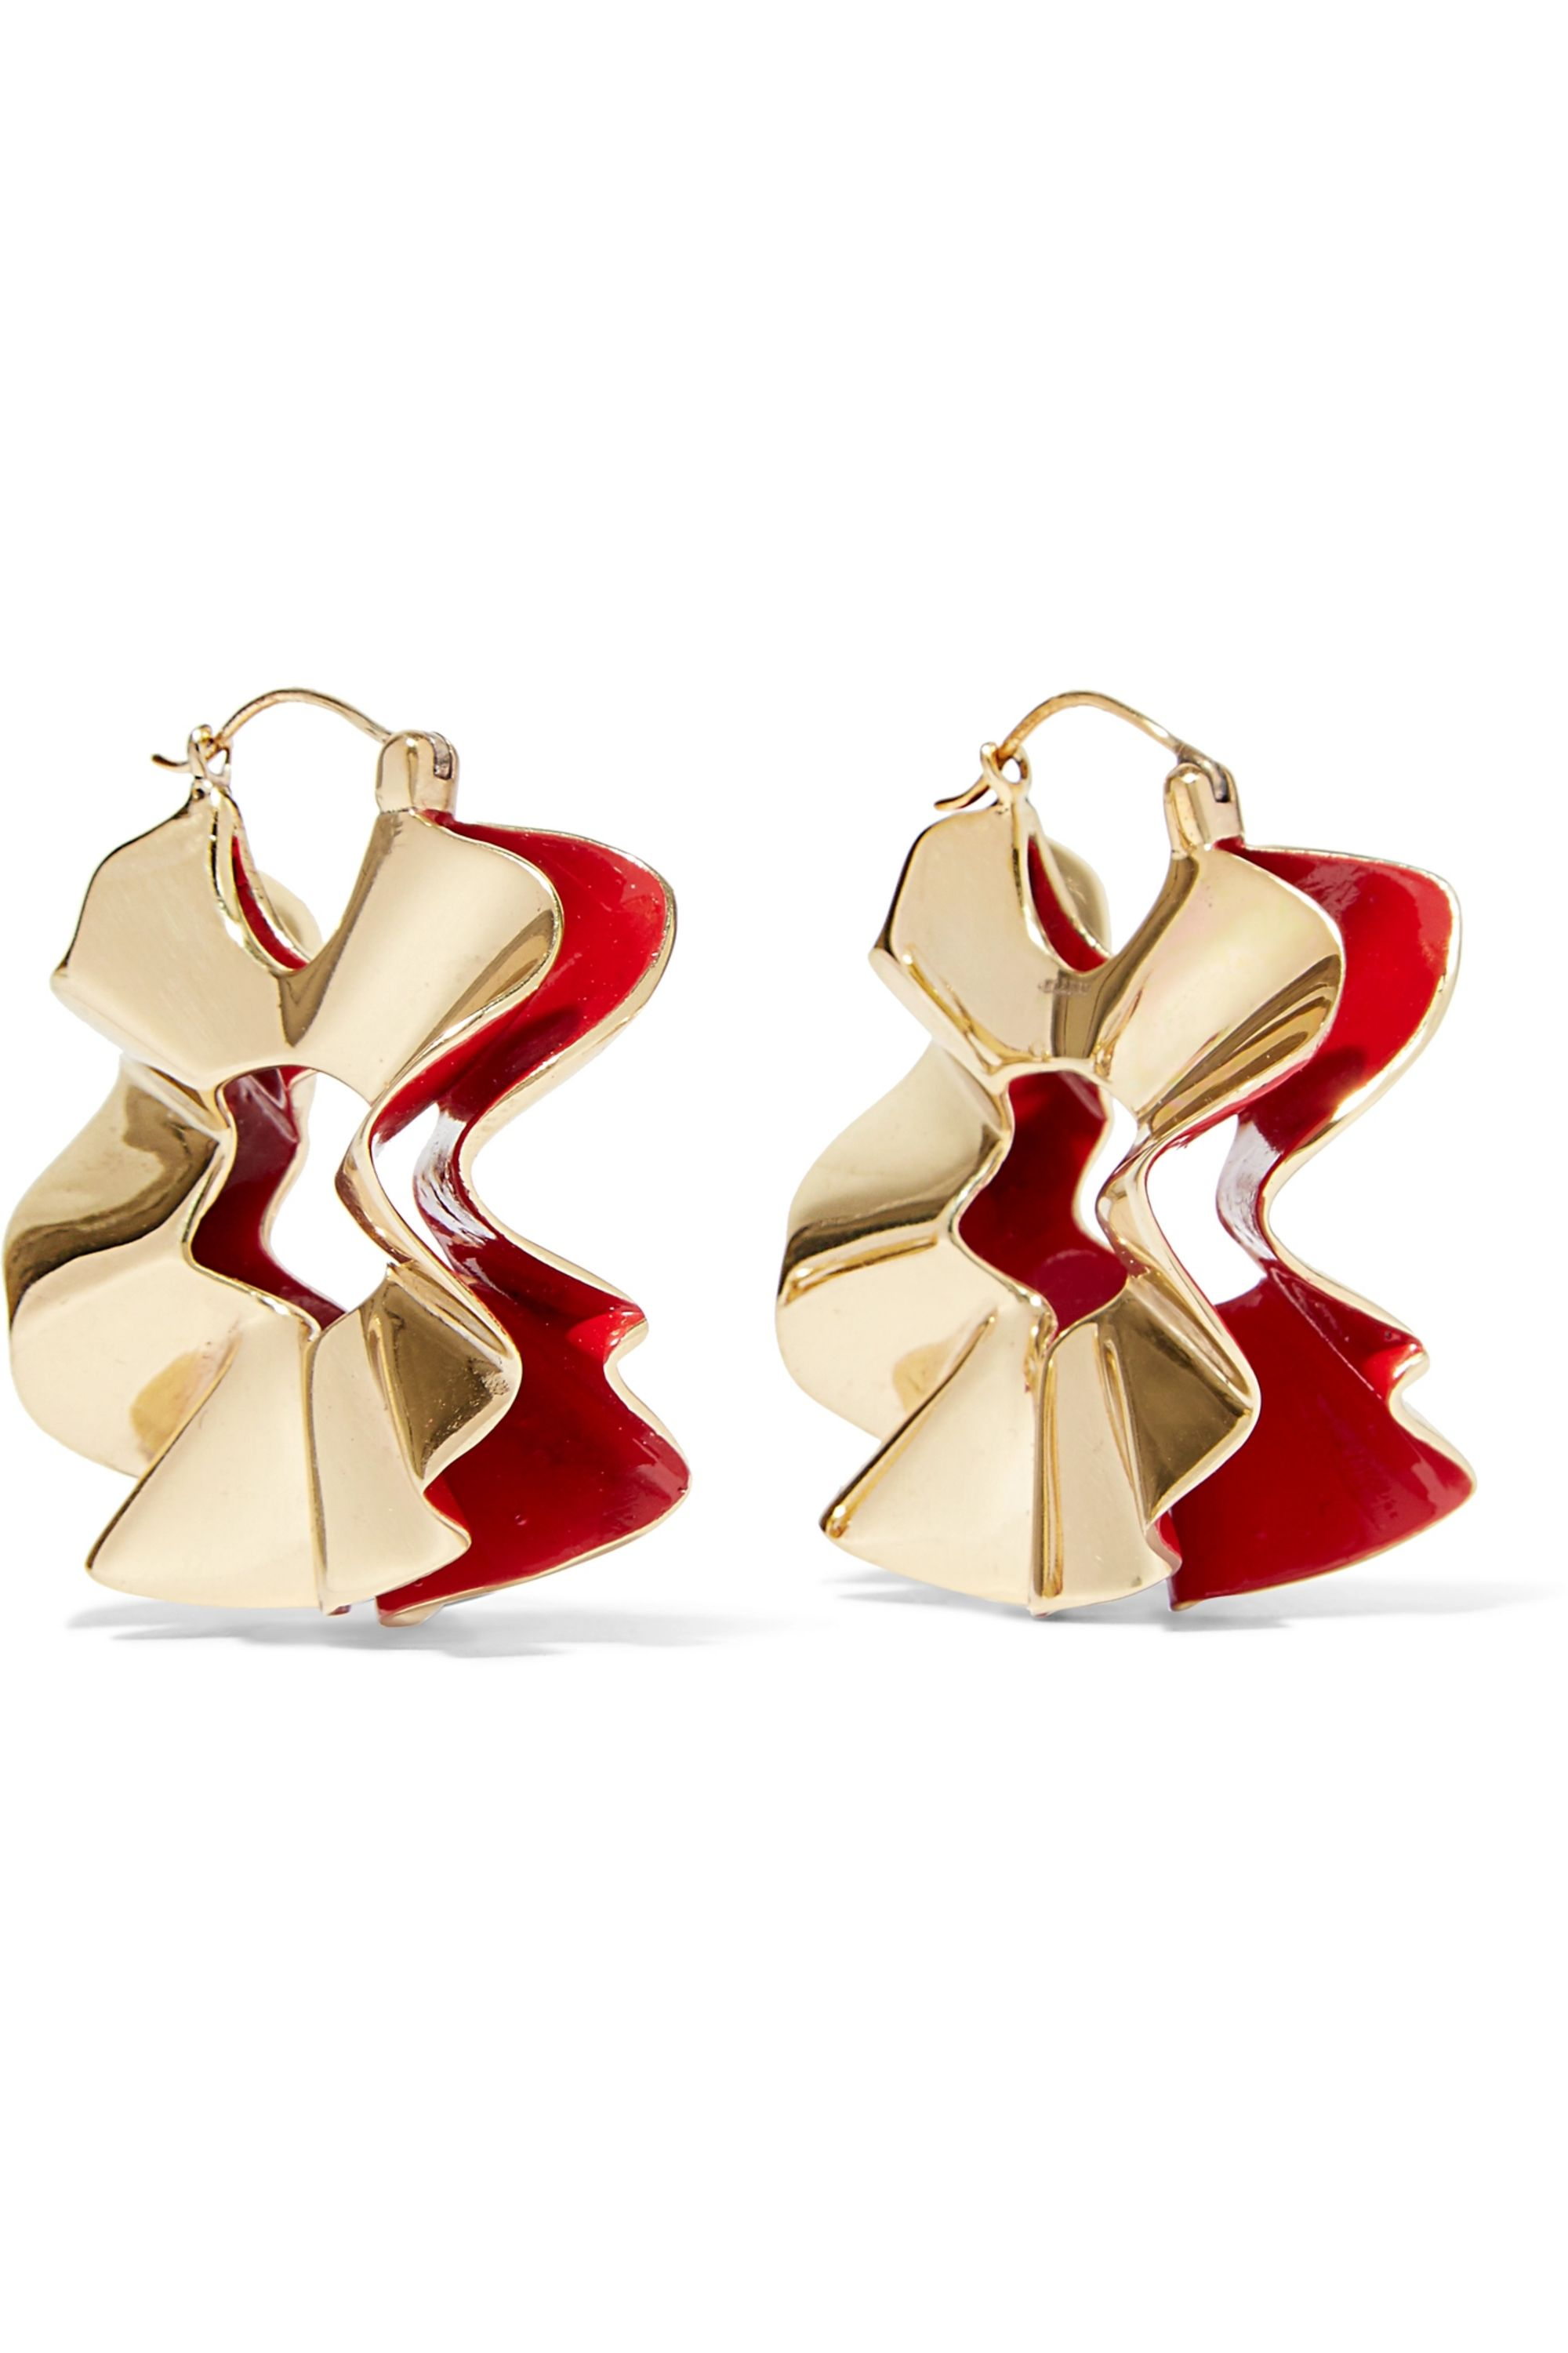 Ellery Beton Curl gold-plated and enamel earrings